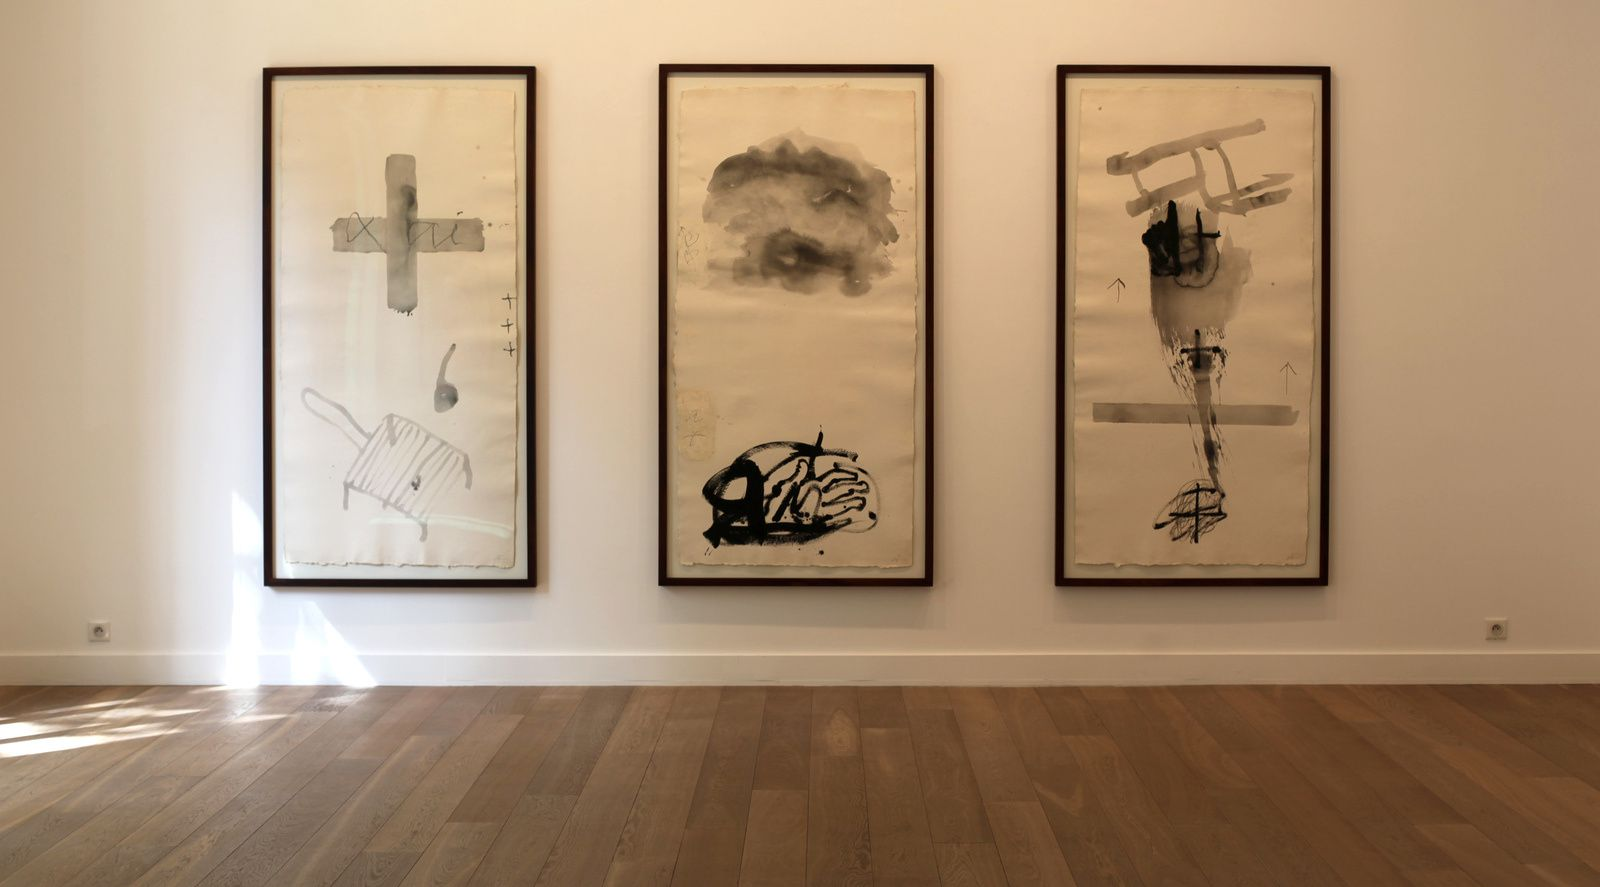 """Paper vertical I, II, III"", 1999 d'Antoni TÀPIES - Courtesy Galerie Lelong © Photo Éric Simon"